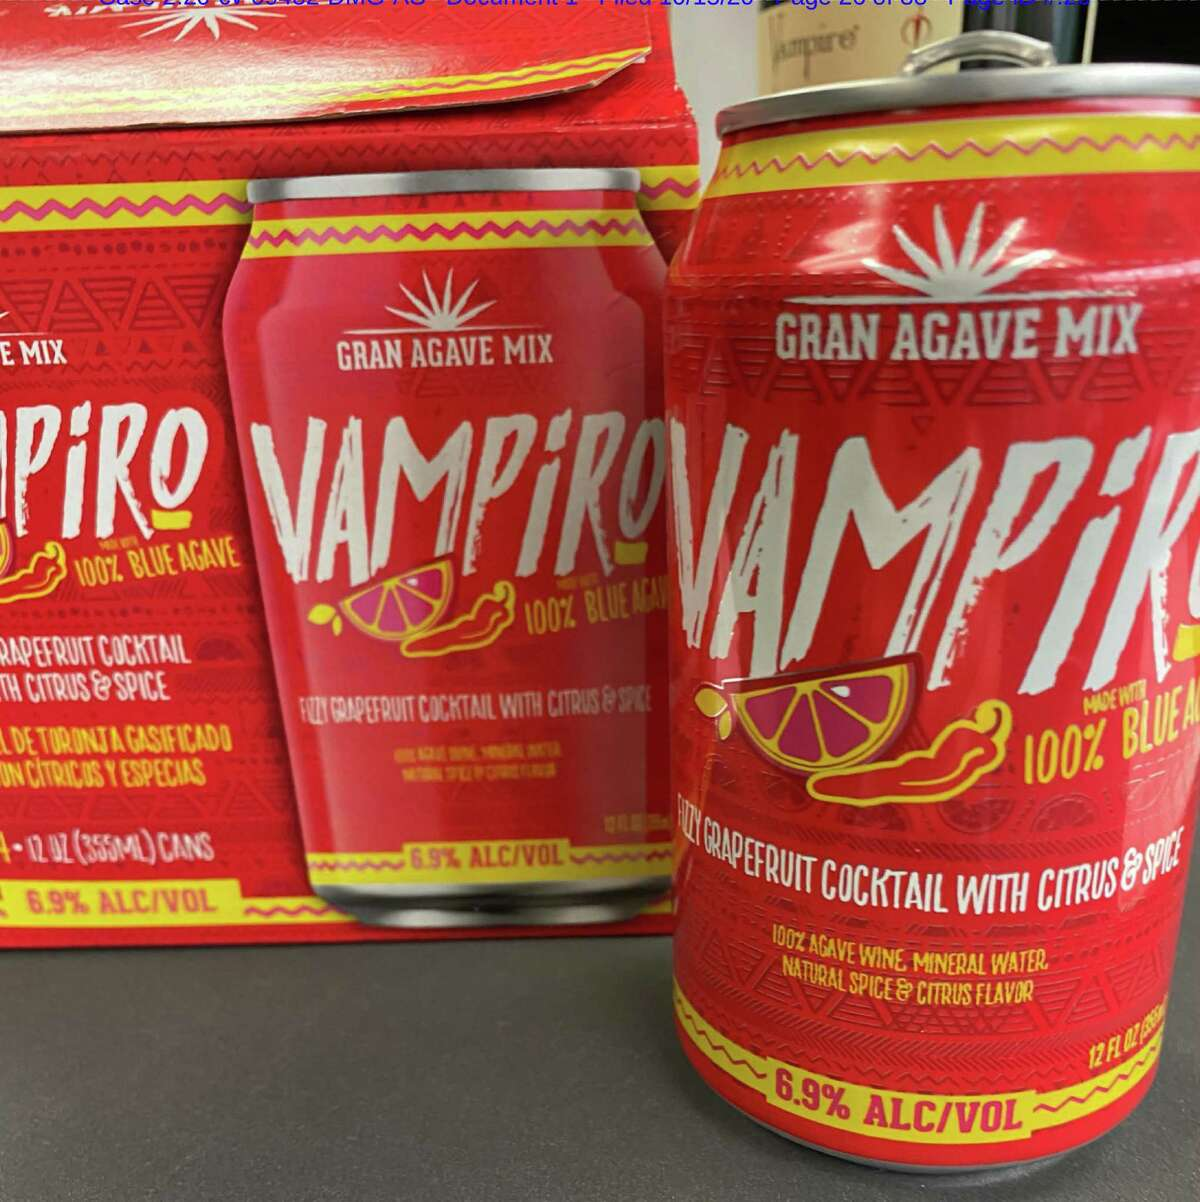 Los Angeles-based Vampire Family Brands LLC filed a federal lawsuit against H-E-B in Beaumont over the San Antonio grocery chain selling a cocktail mix called Vampiro. Vampire alleged the name Gran Agave Mix Vampiro ( vampiro is Spanish for vampire), infringes on trademarks it owns or controls. Vampire abruptly dropped the lawsuit against H-E-B earlier this month.